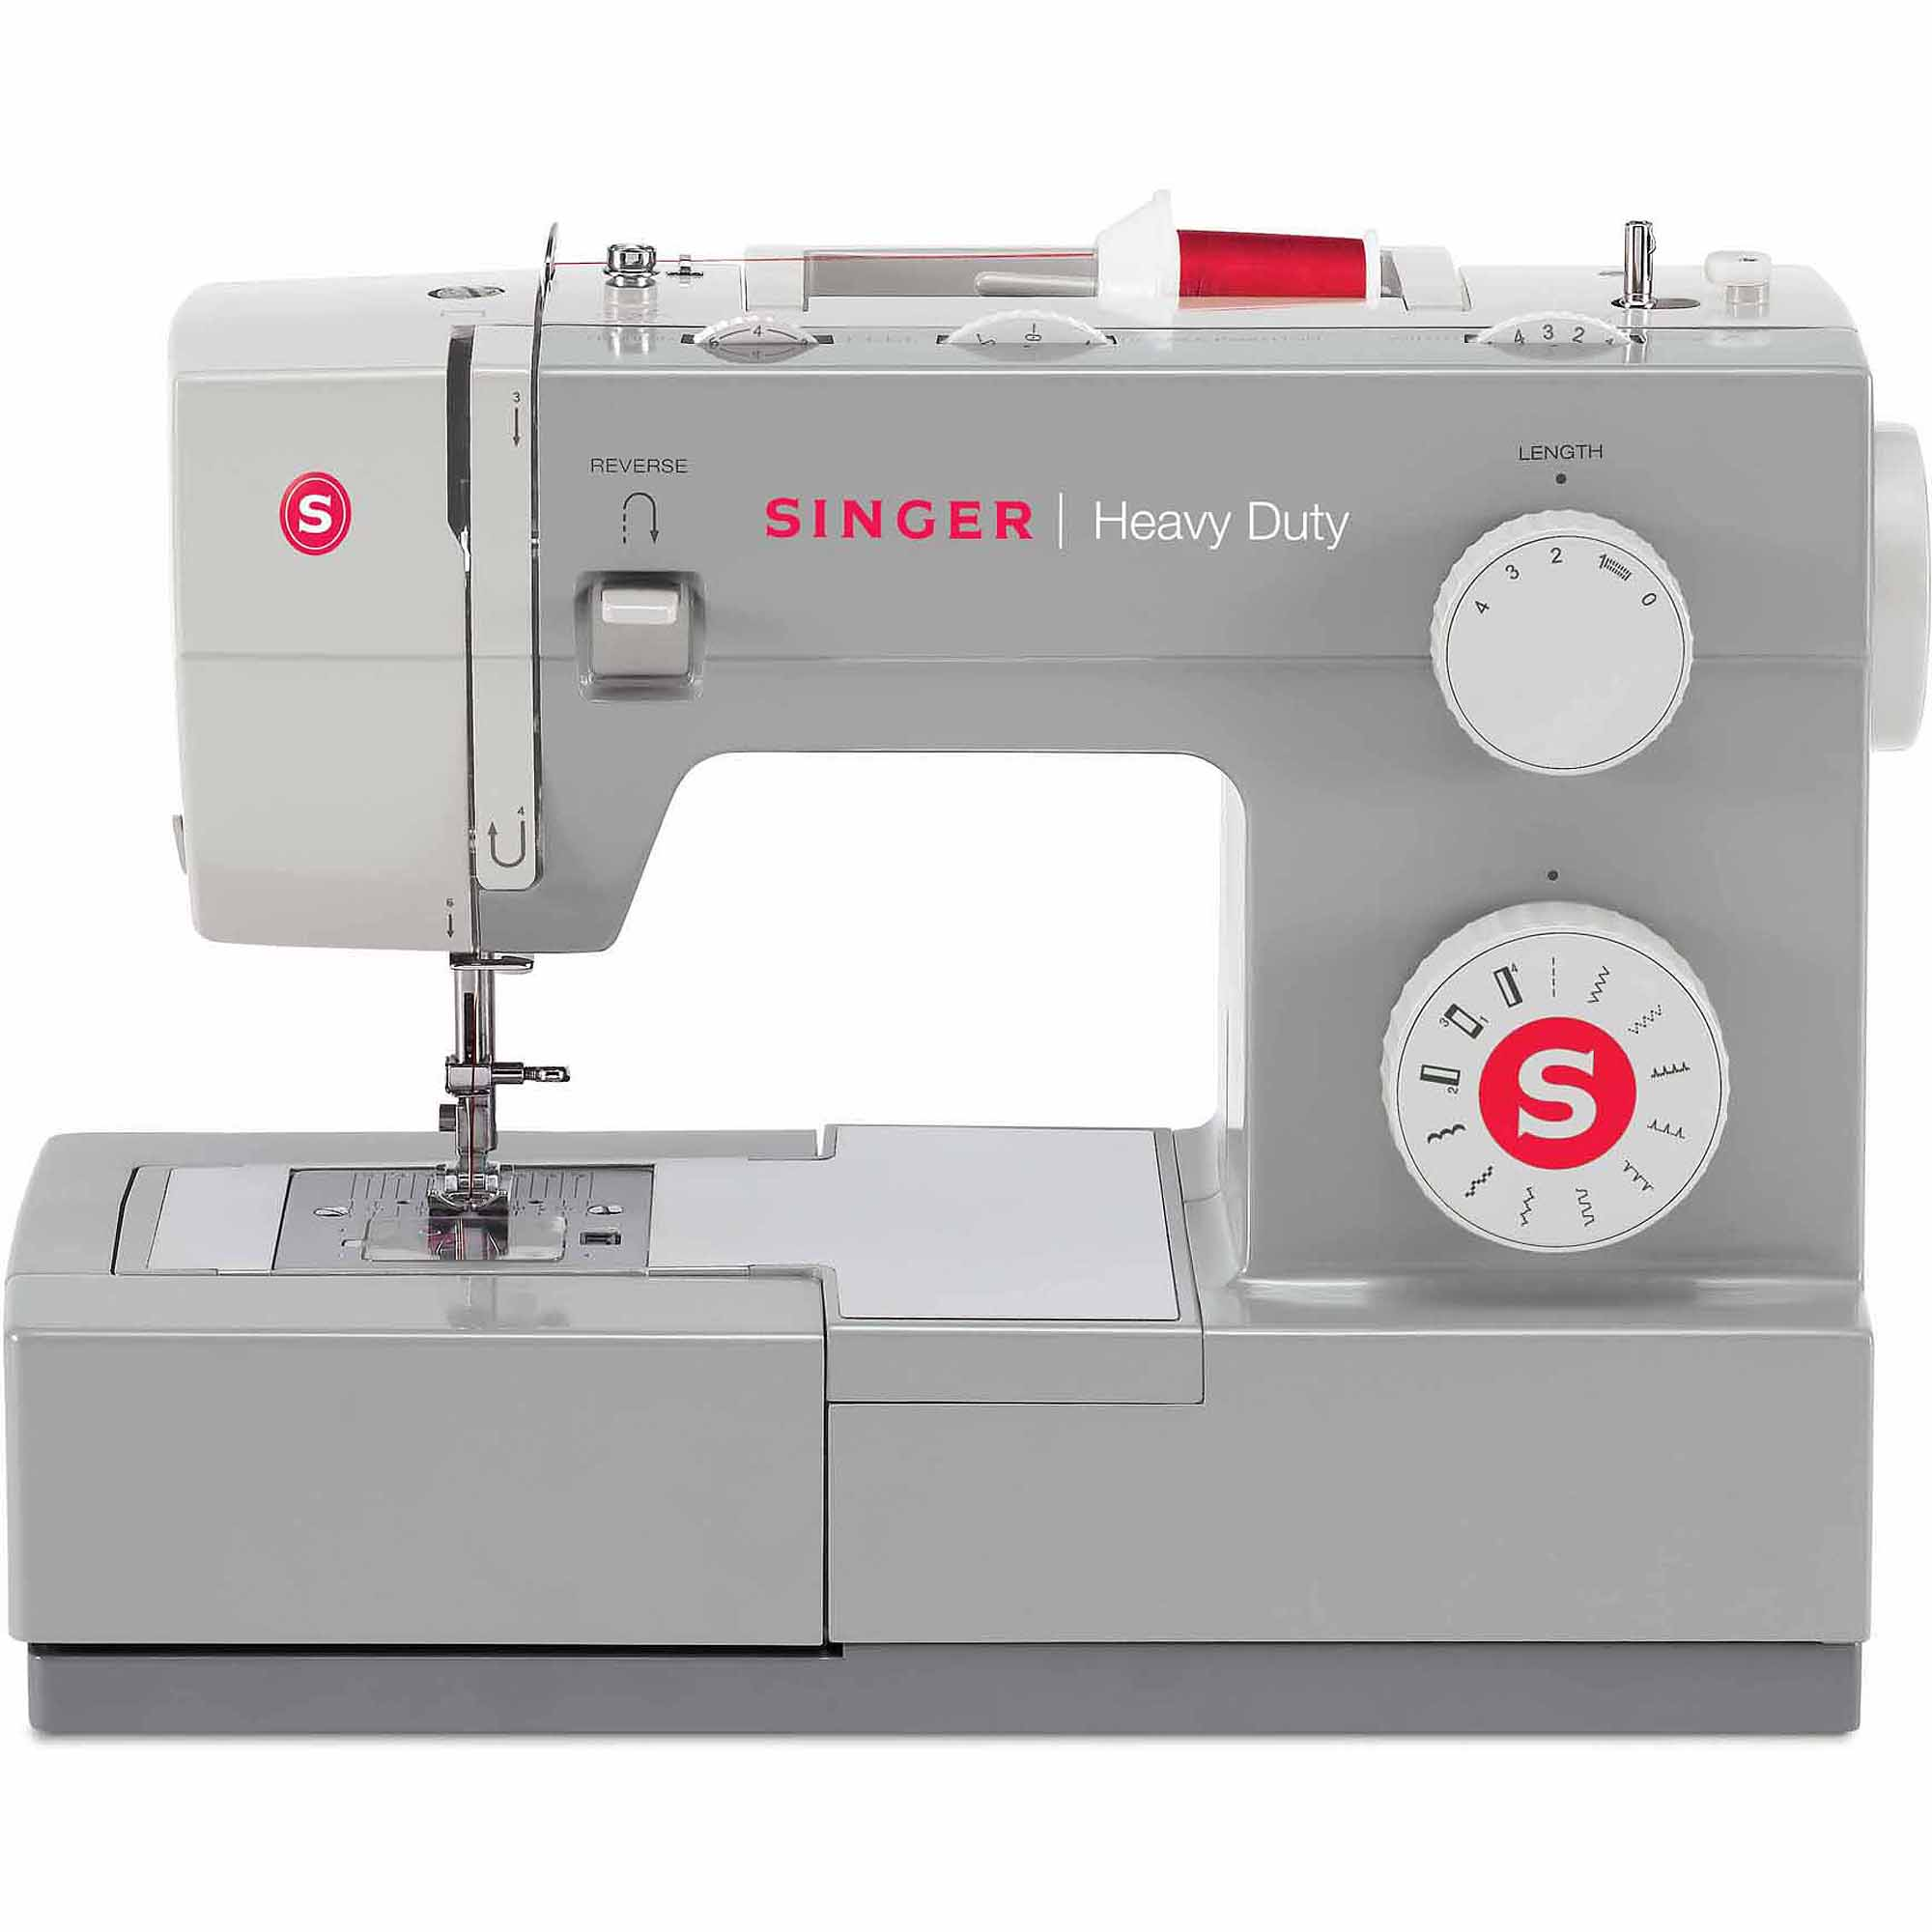 Singer 1,100-Stitch Heavy Duty Sewing Machine, 4411